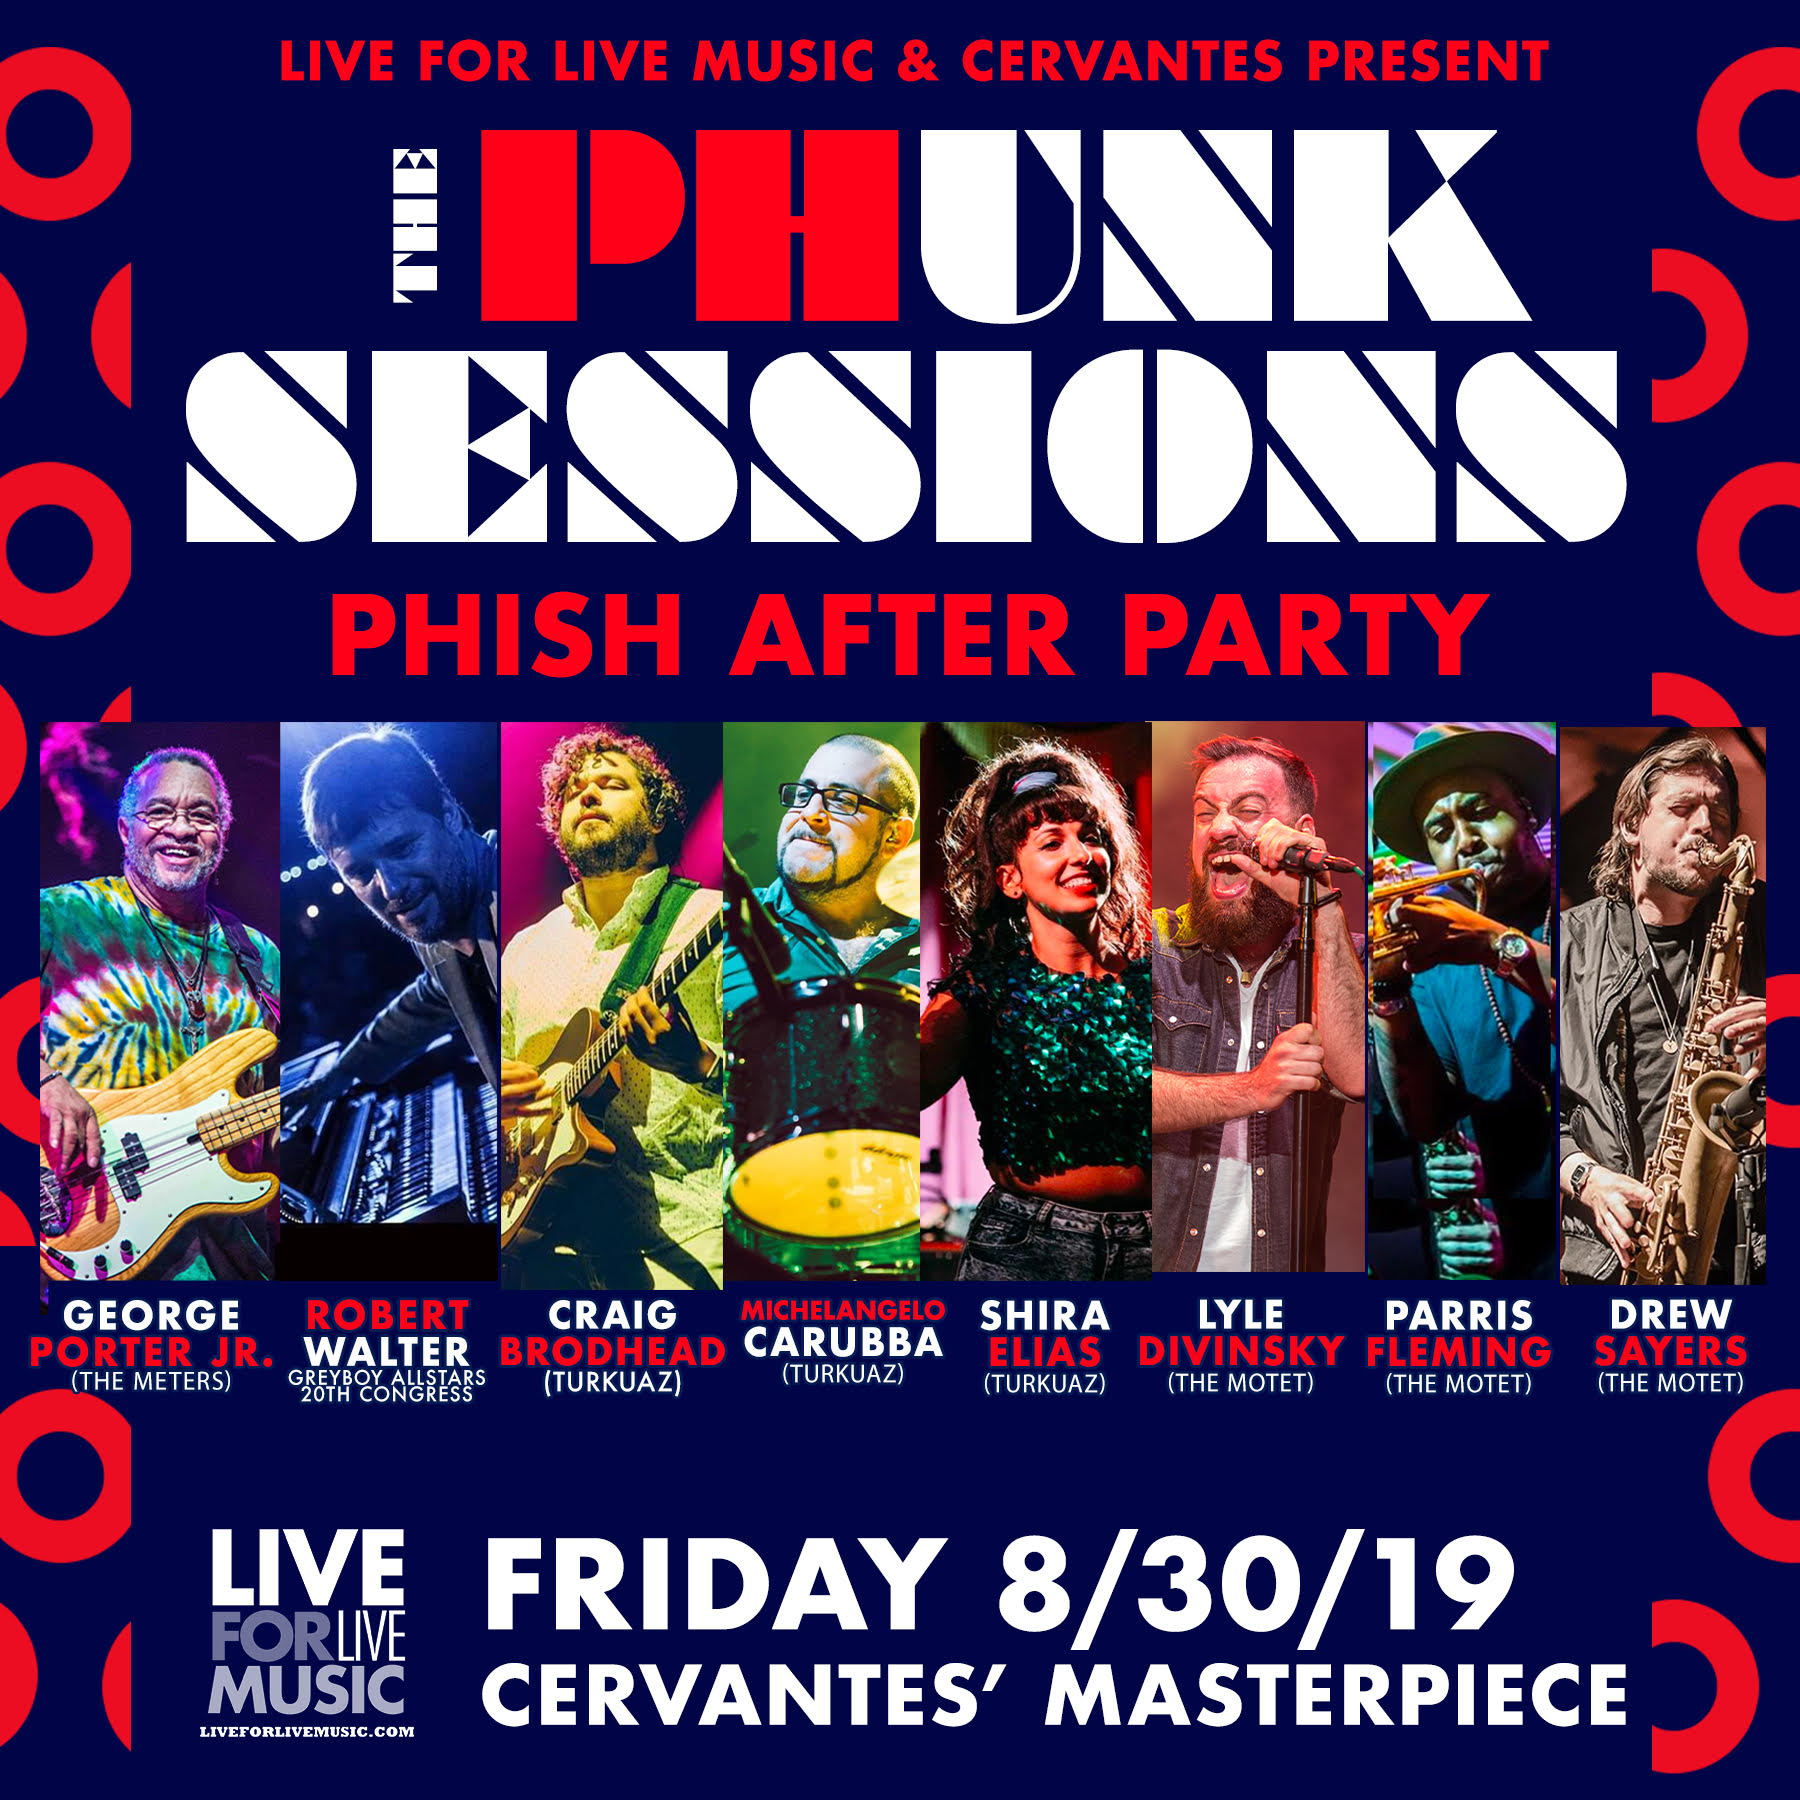 Phish_AfterParty2019.jpg